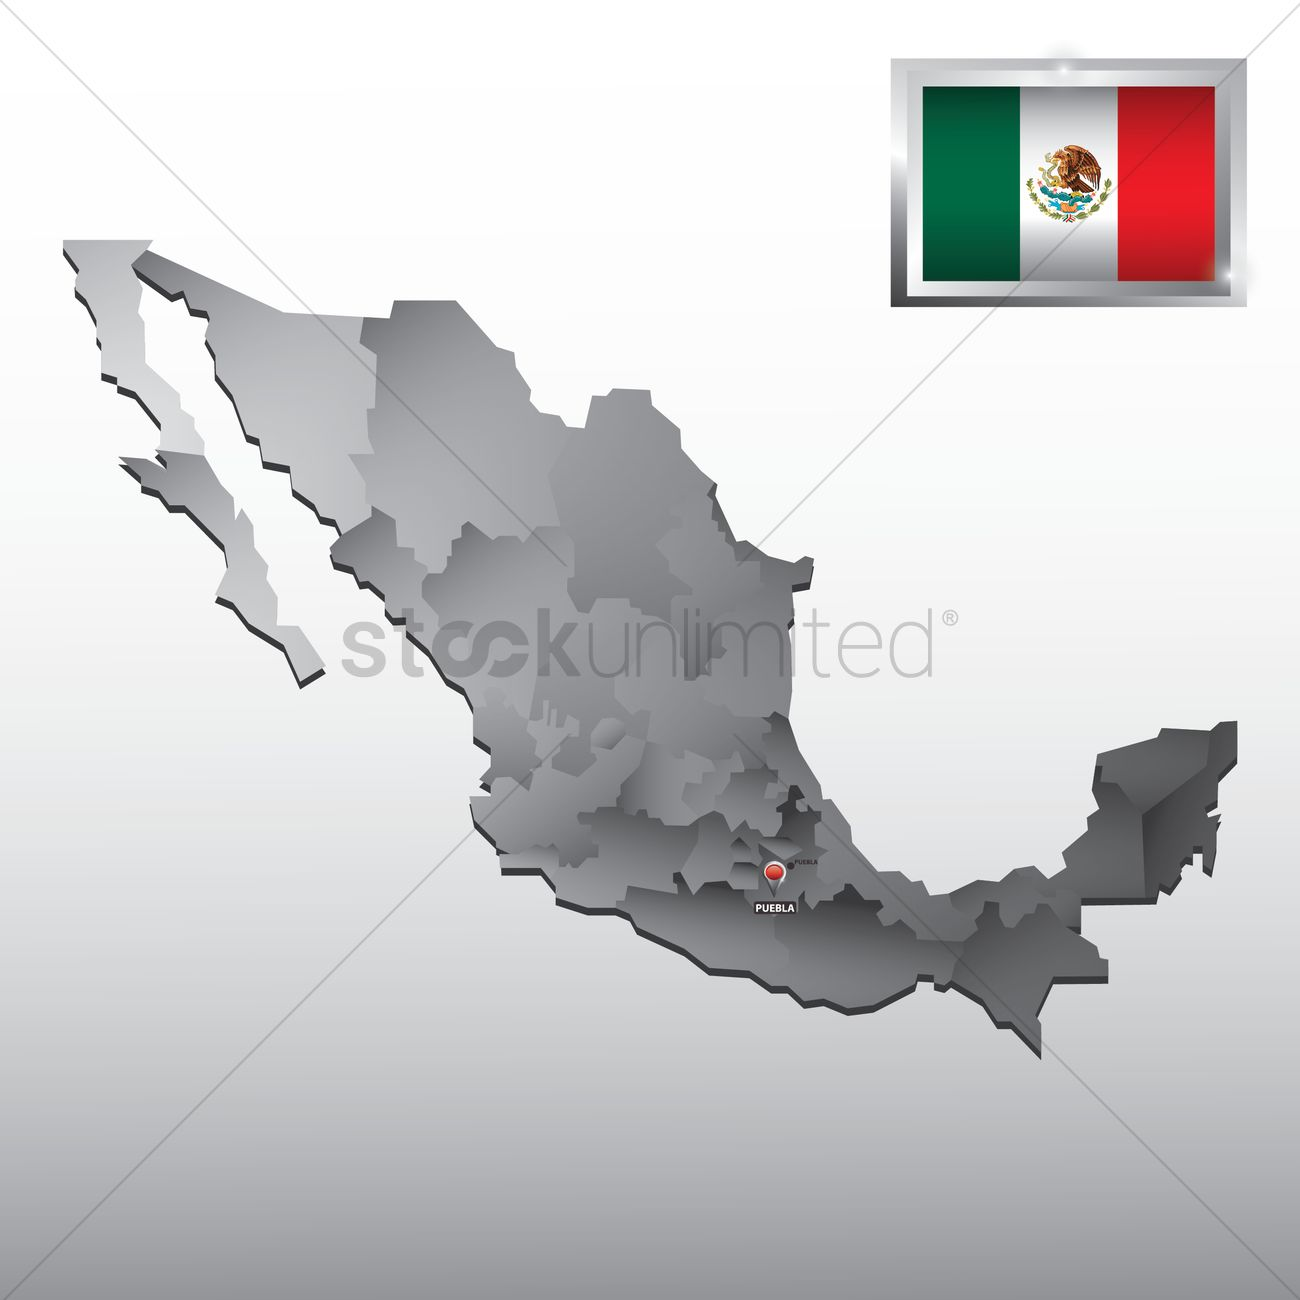 Navigation Pointer Indicating Puebla On Mexico Map Vector Image